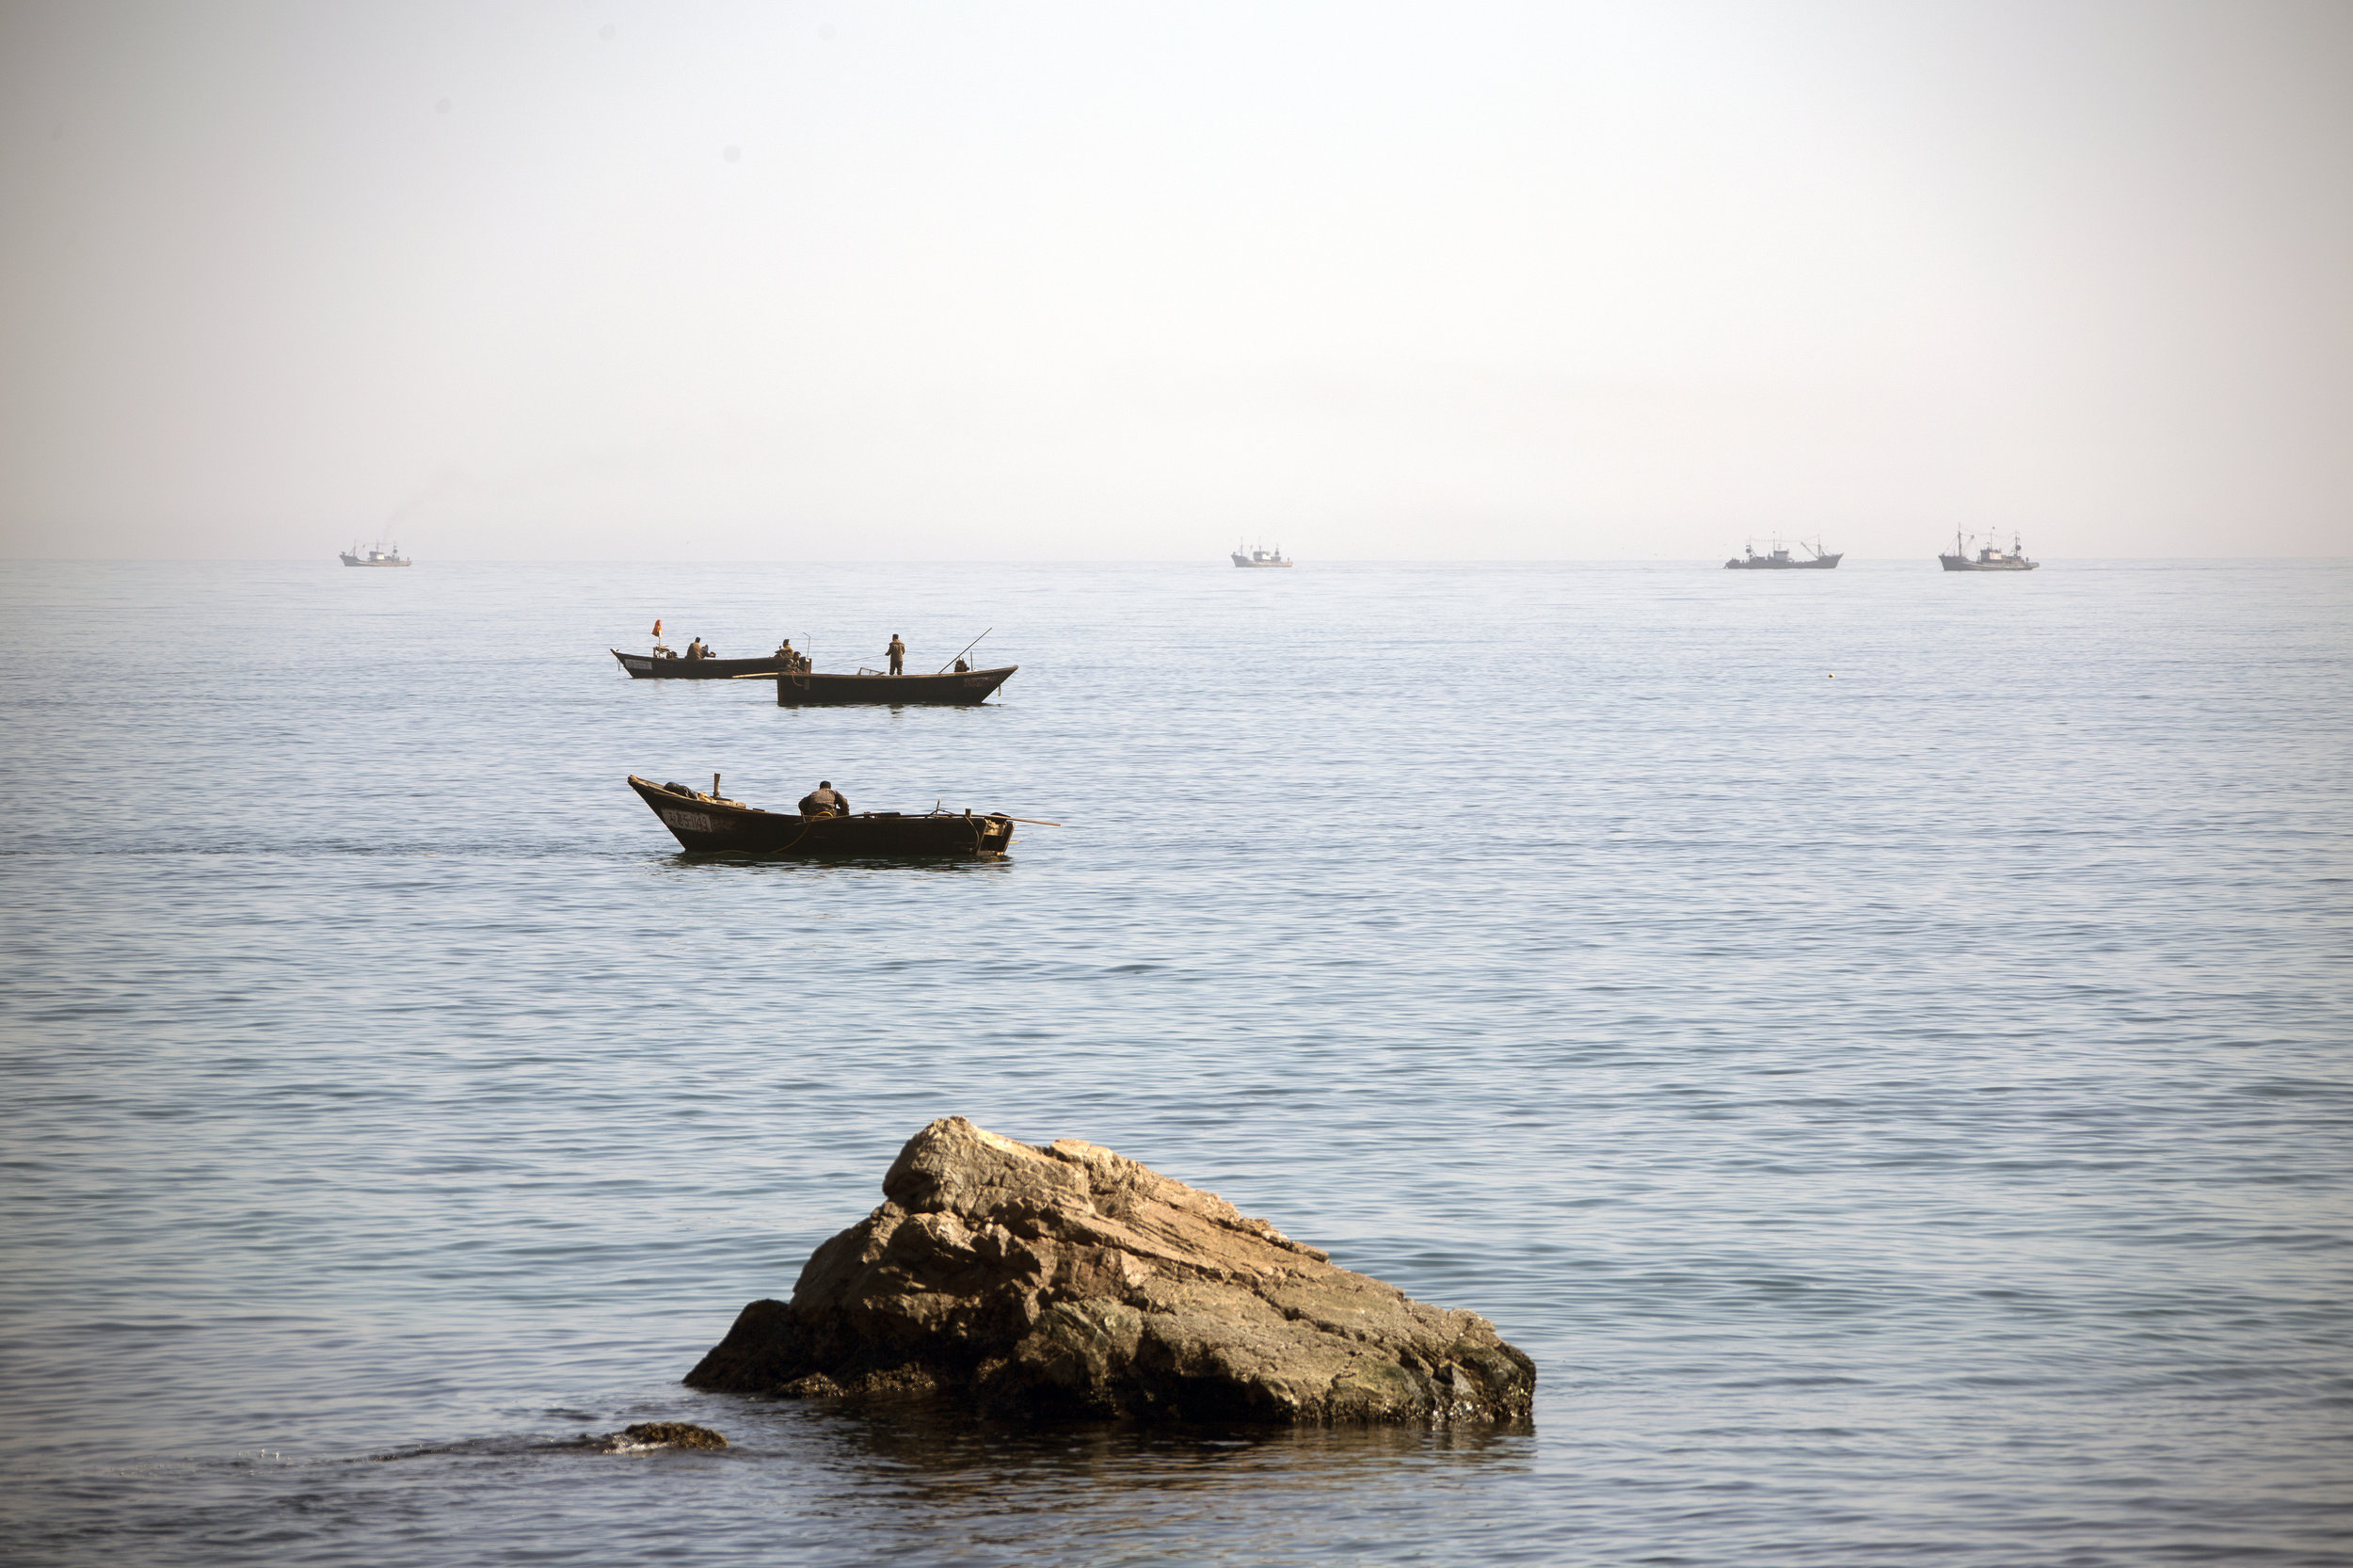 Local fishermen use wooden boats and lines to catch small fish off the coast of North Hamgyong.